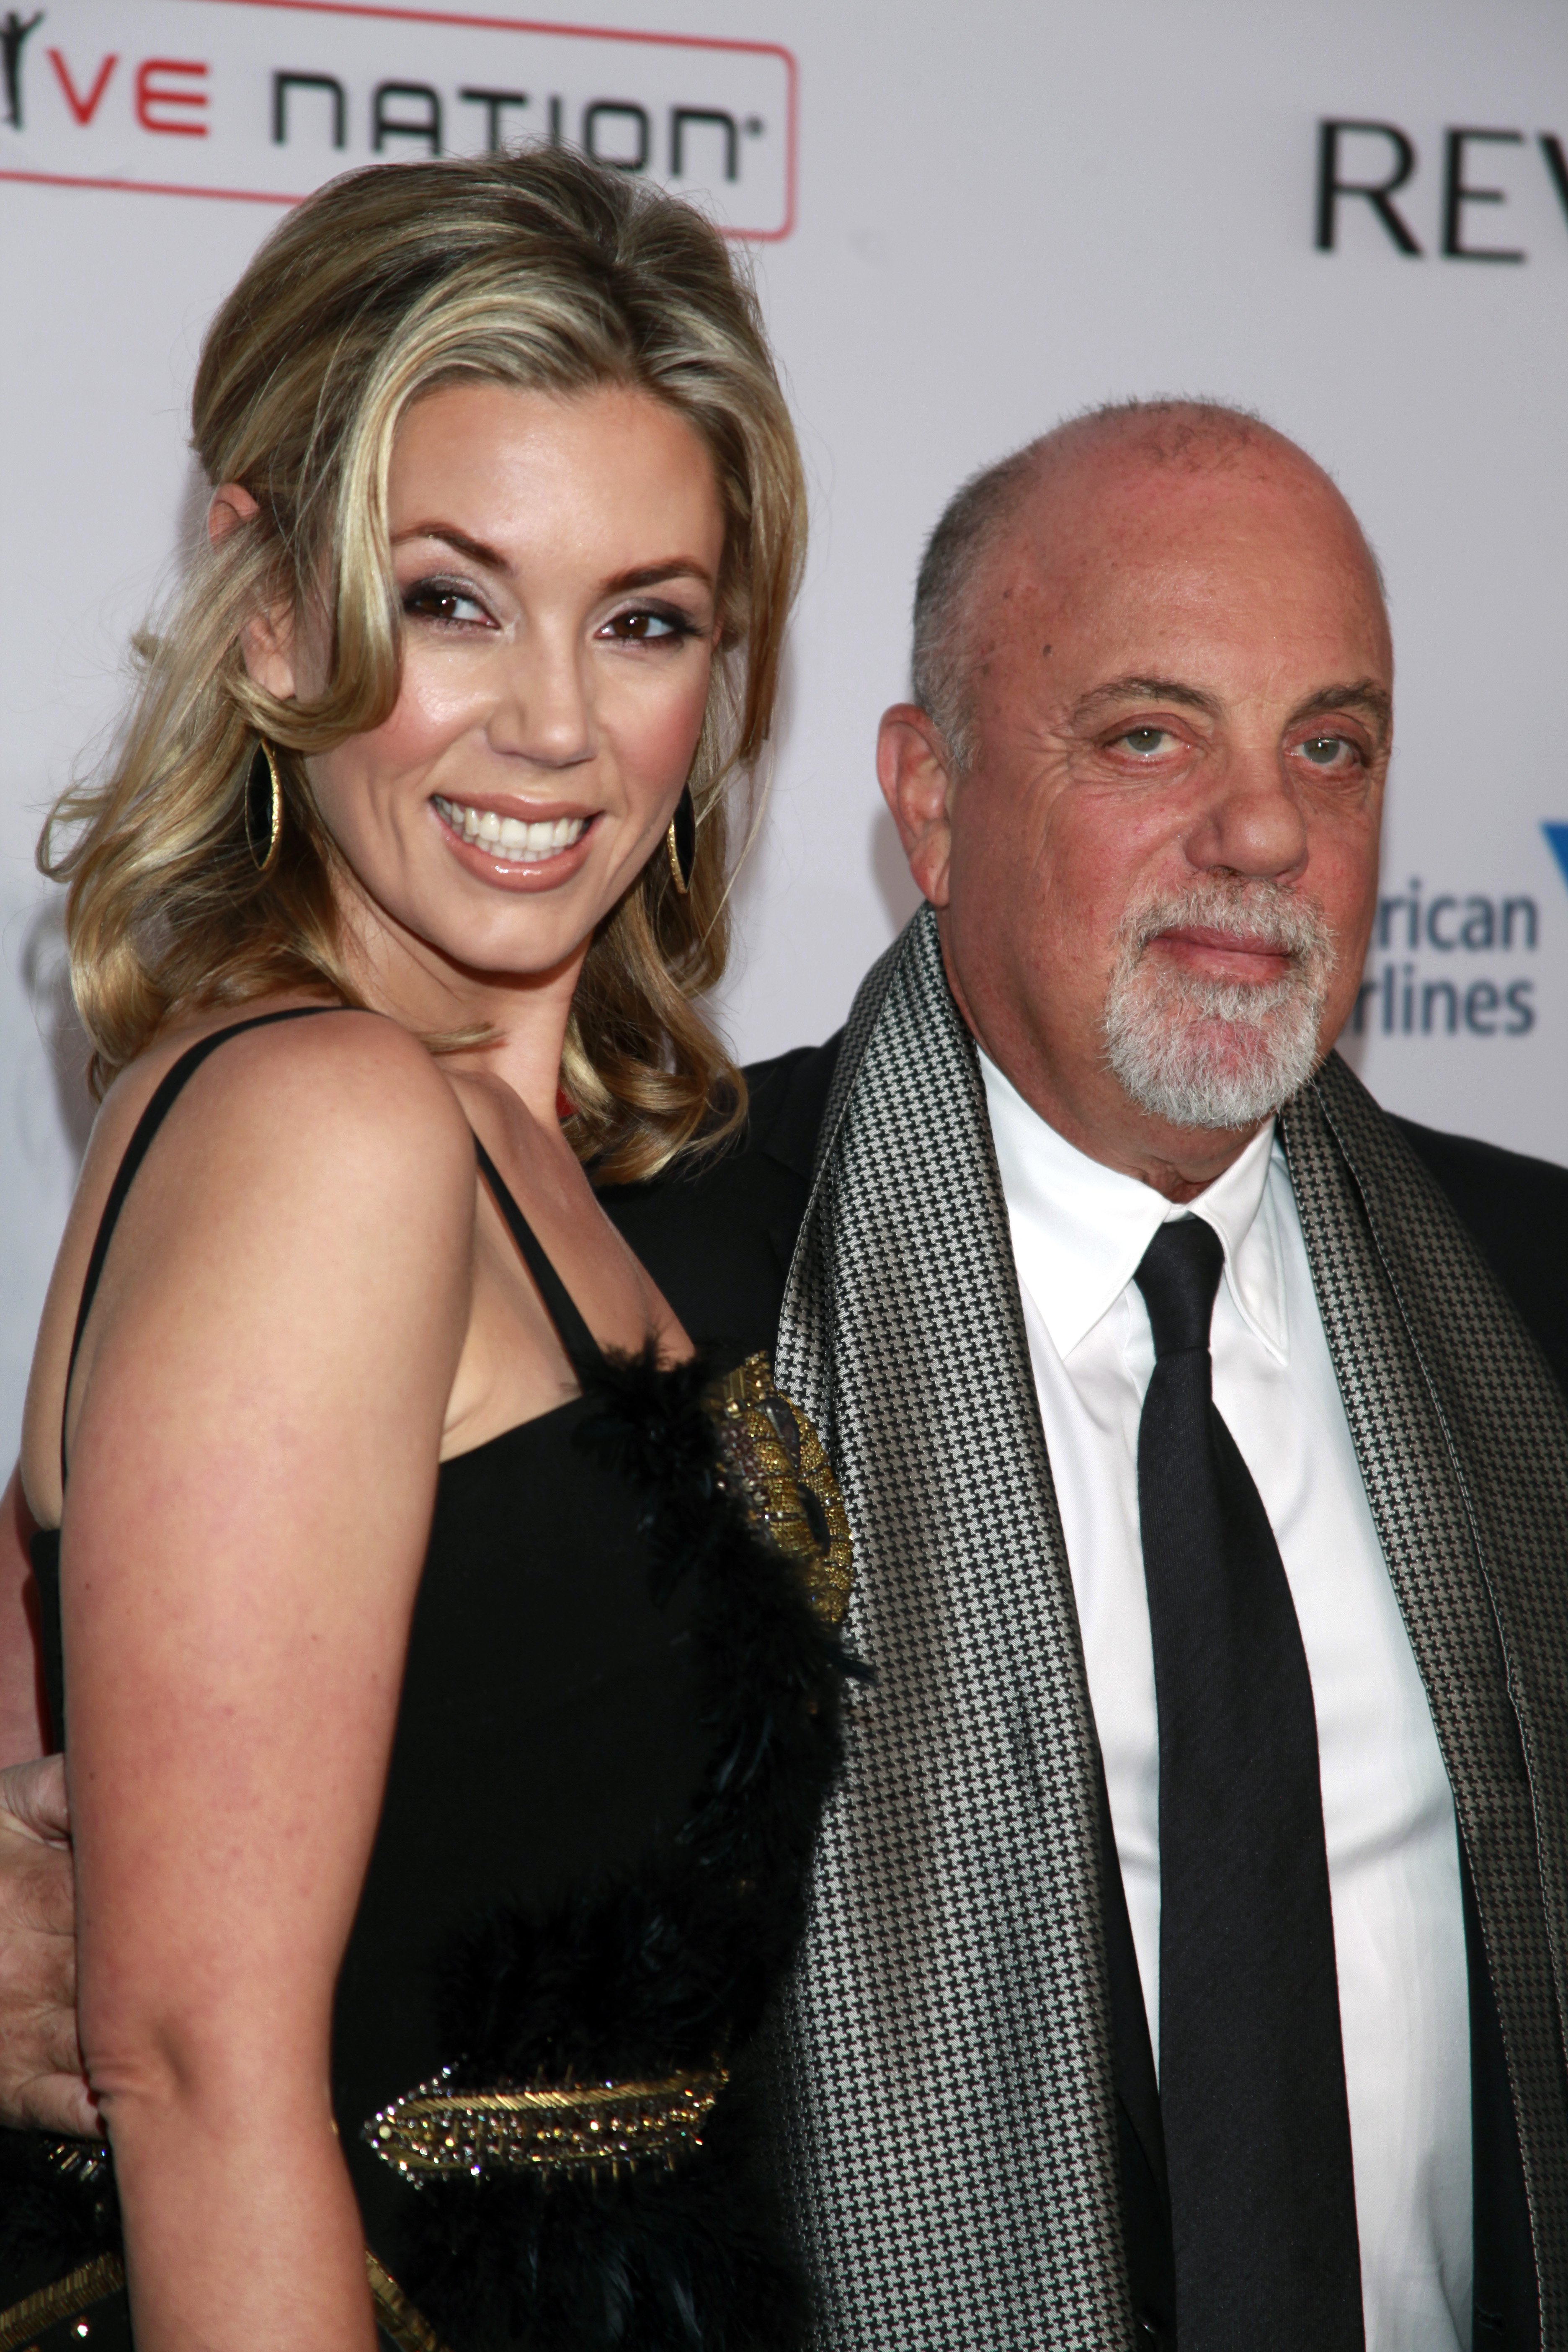 Billy Joel Weds Girlfriend During Fourth of July Party